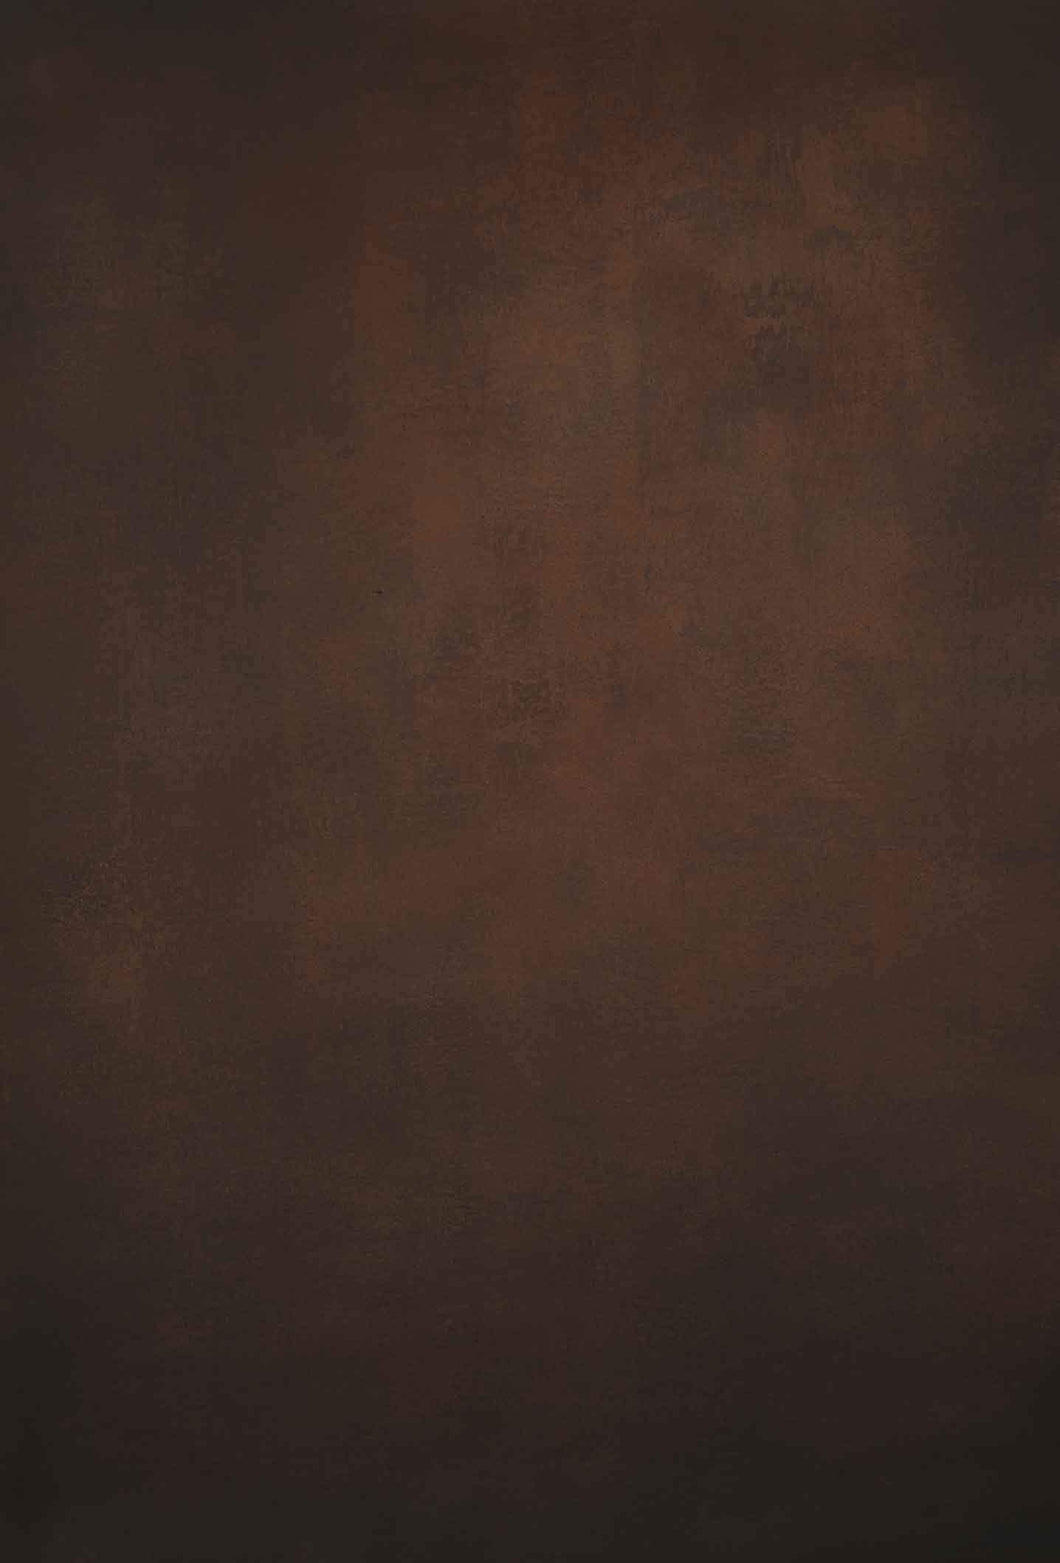 Kate Earth brown Texture Abstract Background Painted Backdrop